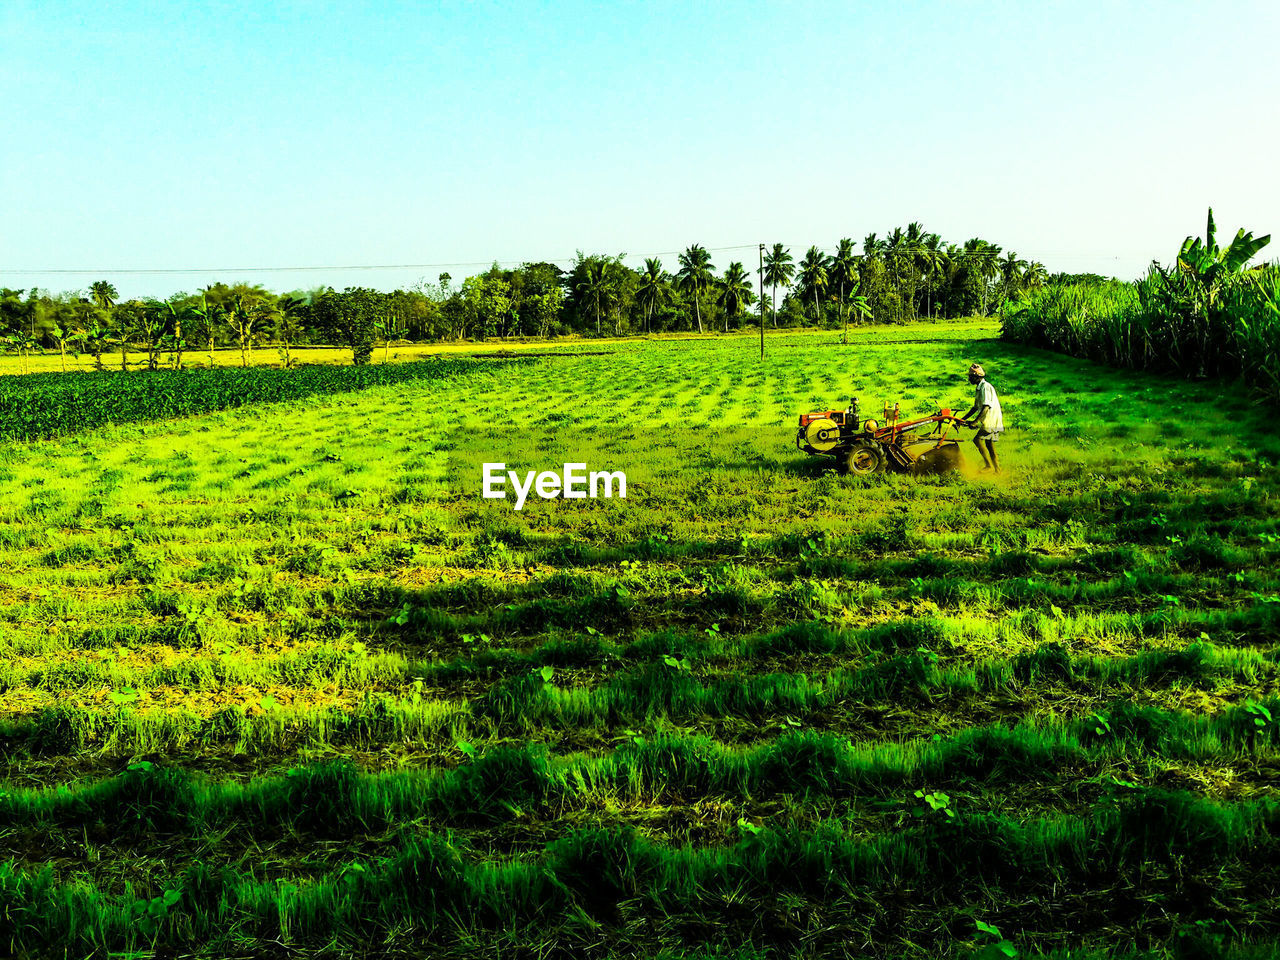 plant, sky, grass, field, green color, landscape, land, environment, animal, tree, animal themes, nature, mammal, domestic, domestic animals, beauty in nature, clear sky, tranquil scene, pets, tranquility, no people, outdoors